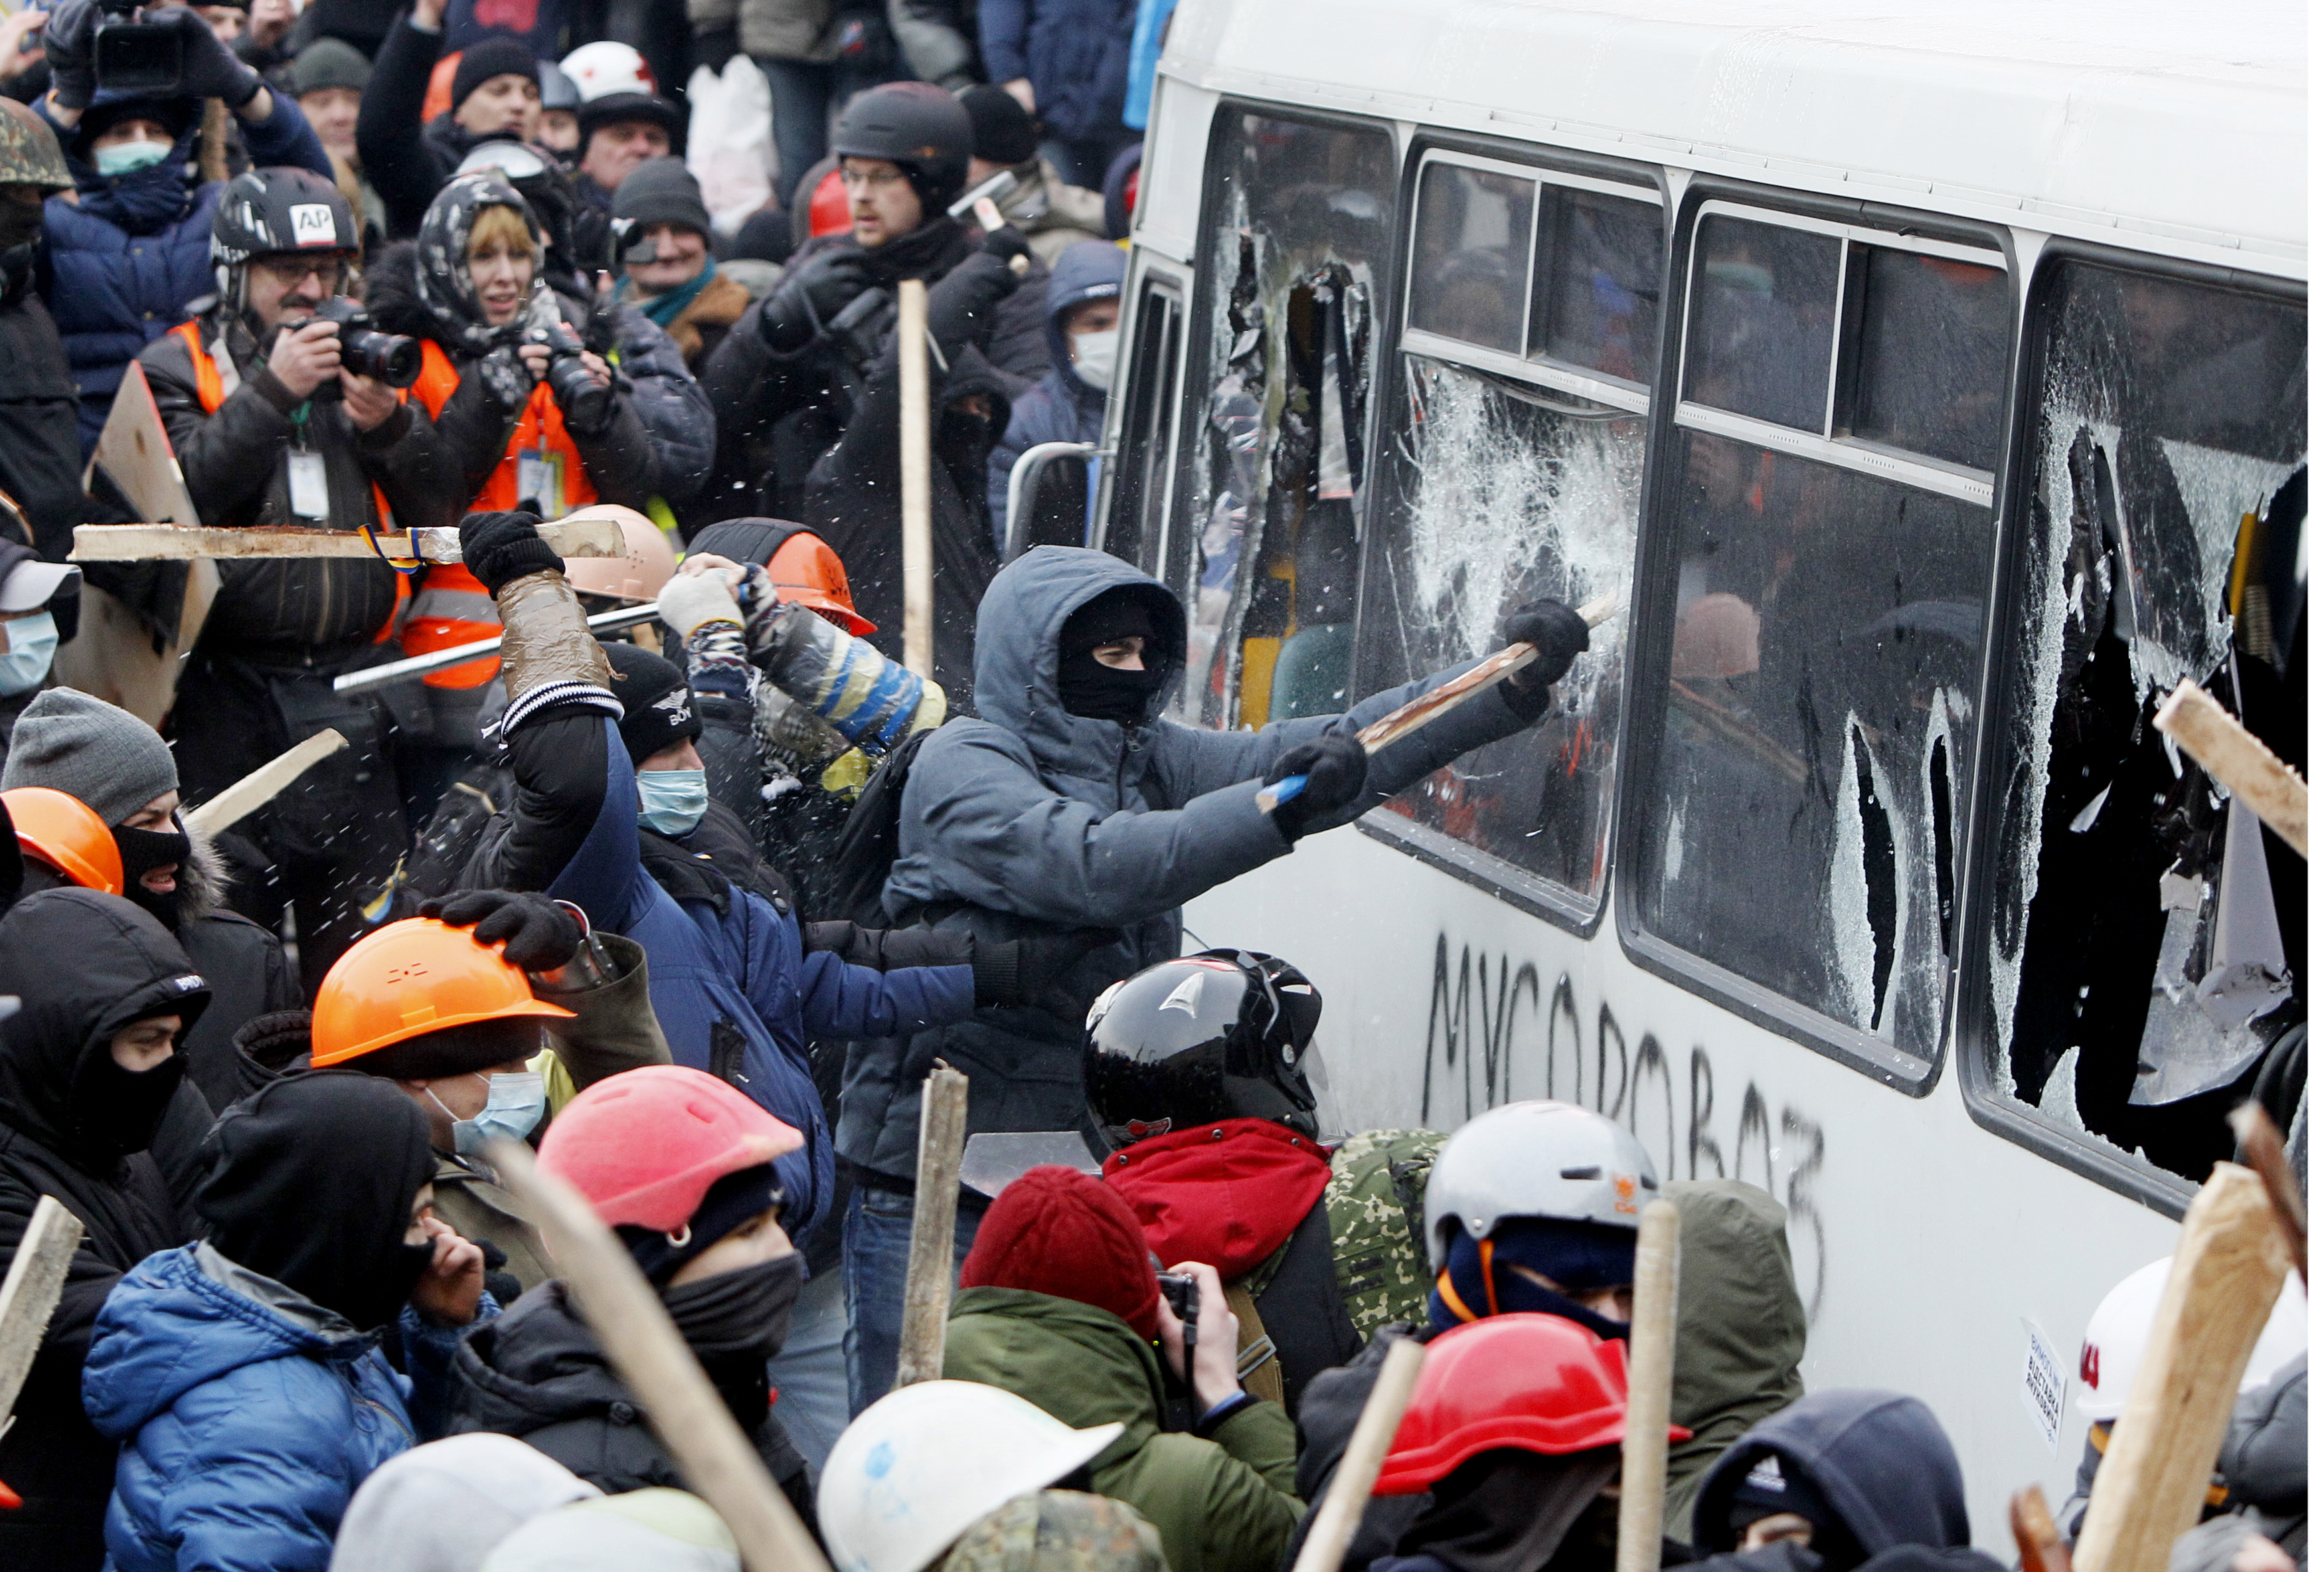 Pro-European protesters attack a police van during a rally near government administration buildings in Kiev January 19, 2014. Up to 100,000 Ukrainians massed in the capital Kiev on Sunday in defiance of sweeping new laws aimed at stamping out anti-go